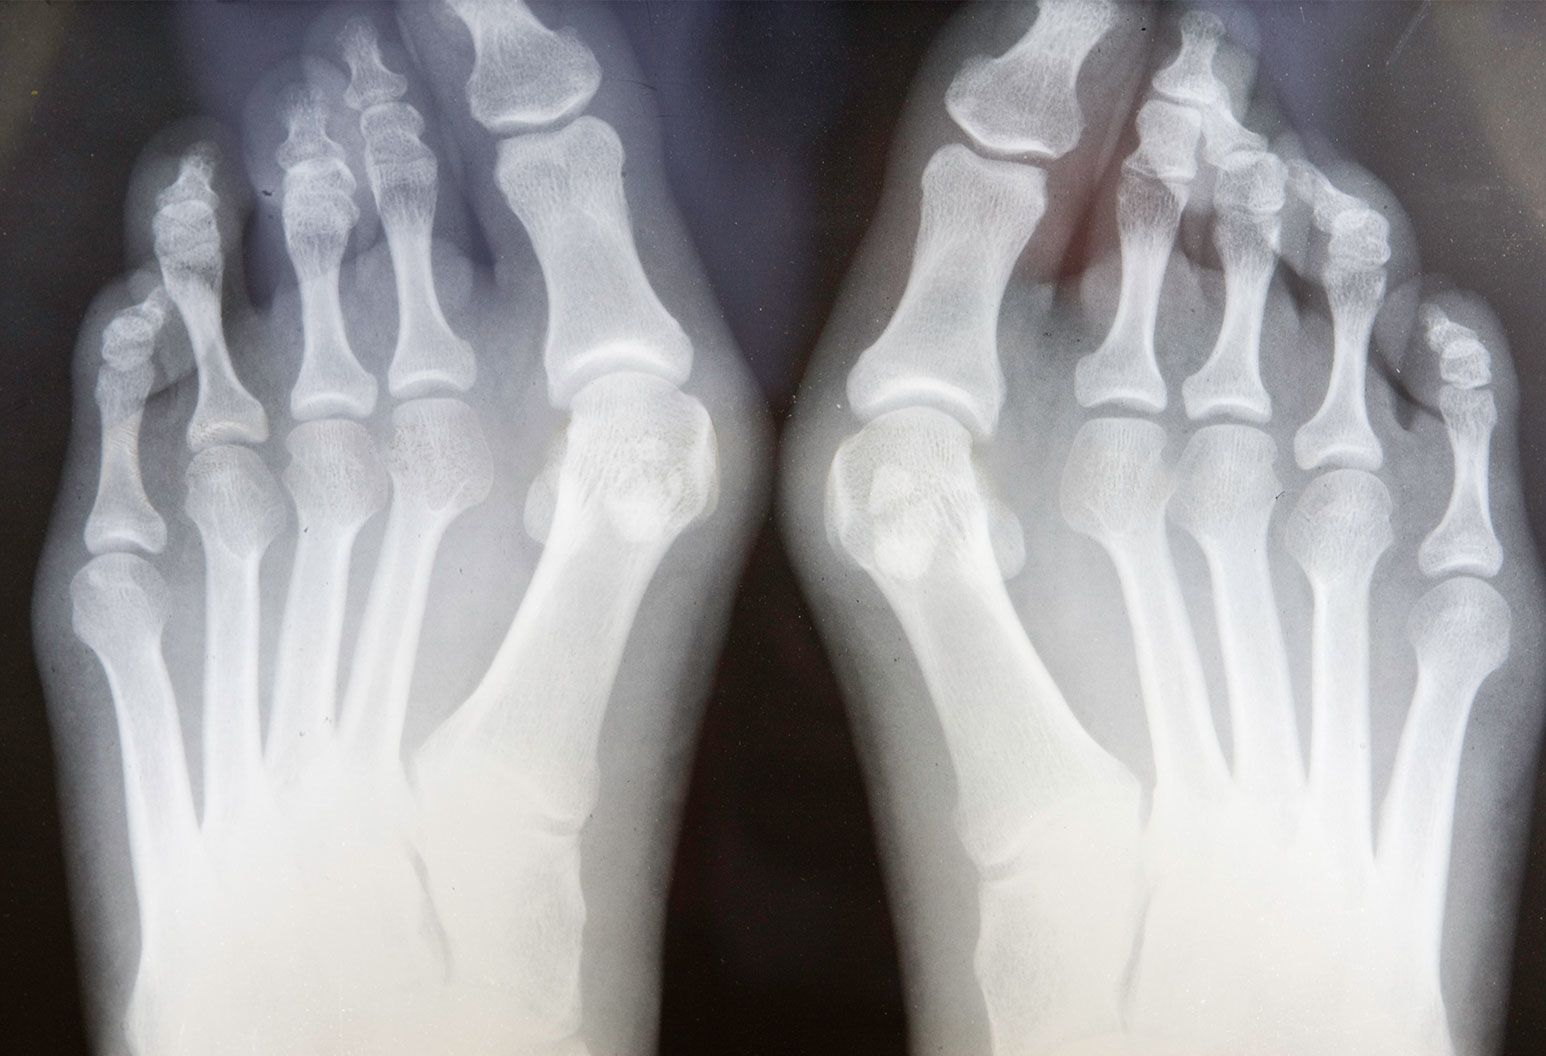 An x-ray image of two feet show a crooked bone protruding out from the inner side of the feet by the knuckle of each toe.